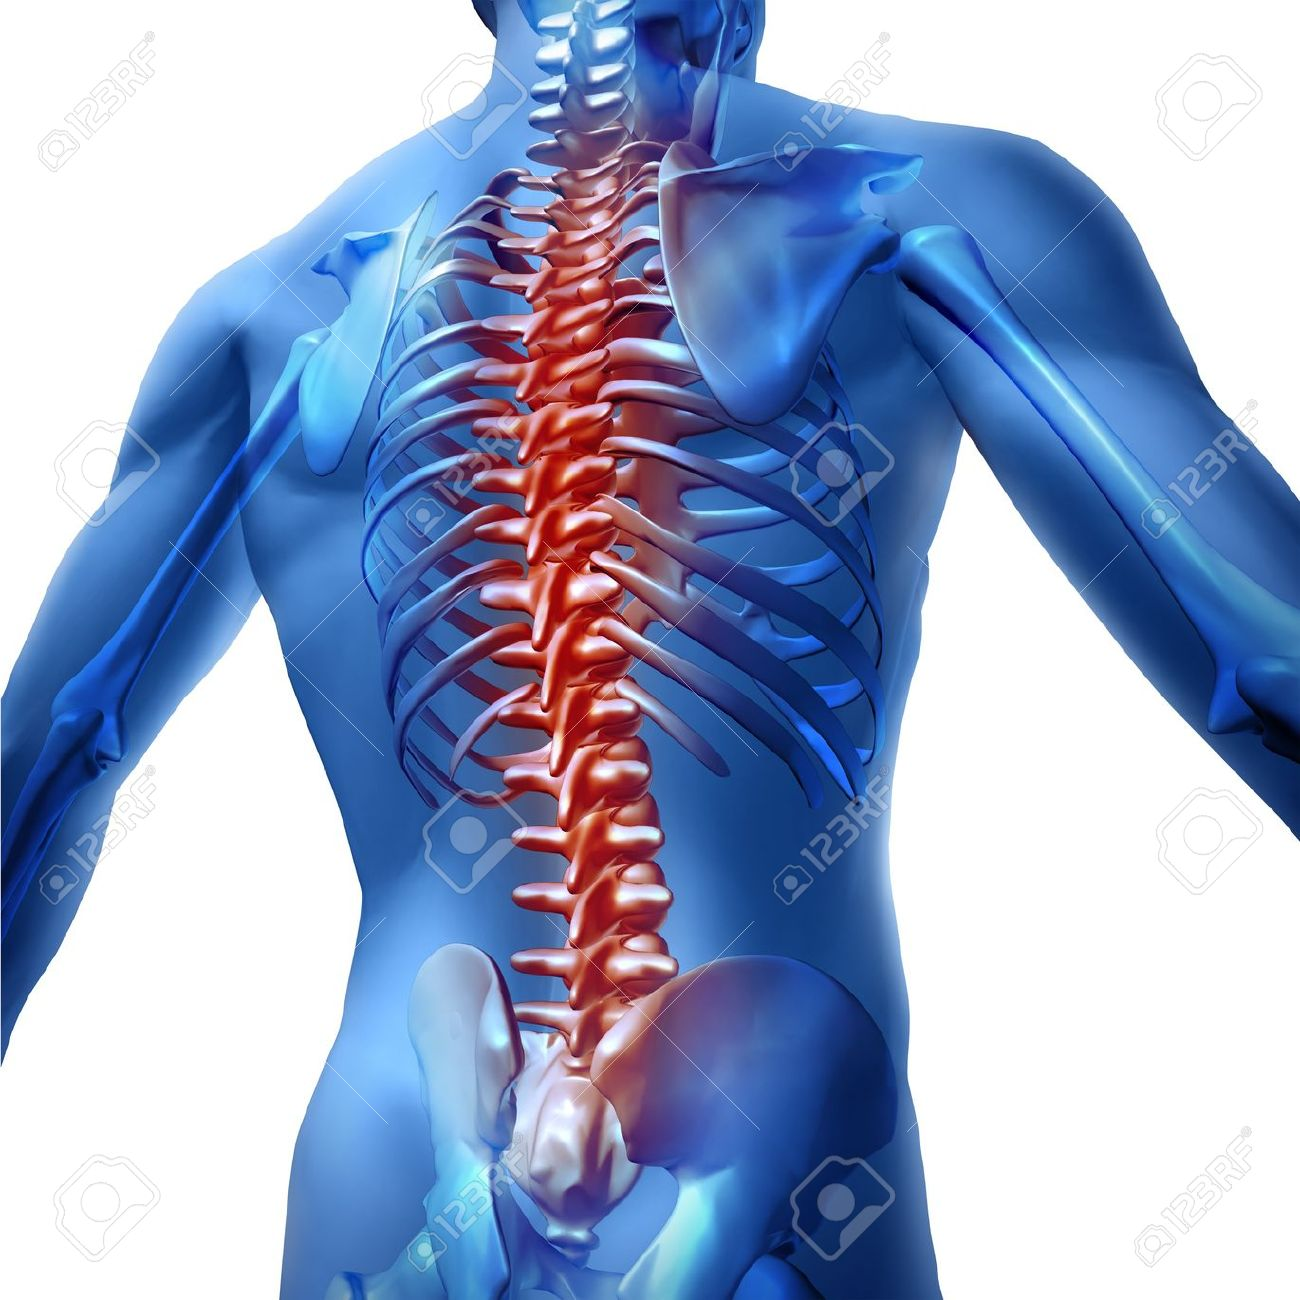 Human Body Backache And Back Pain With An Upper Torso Body Skeleton ...